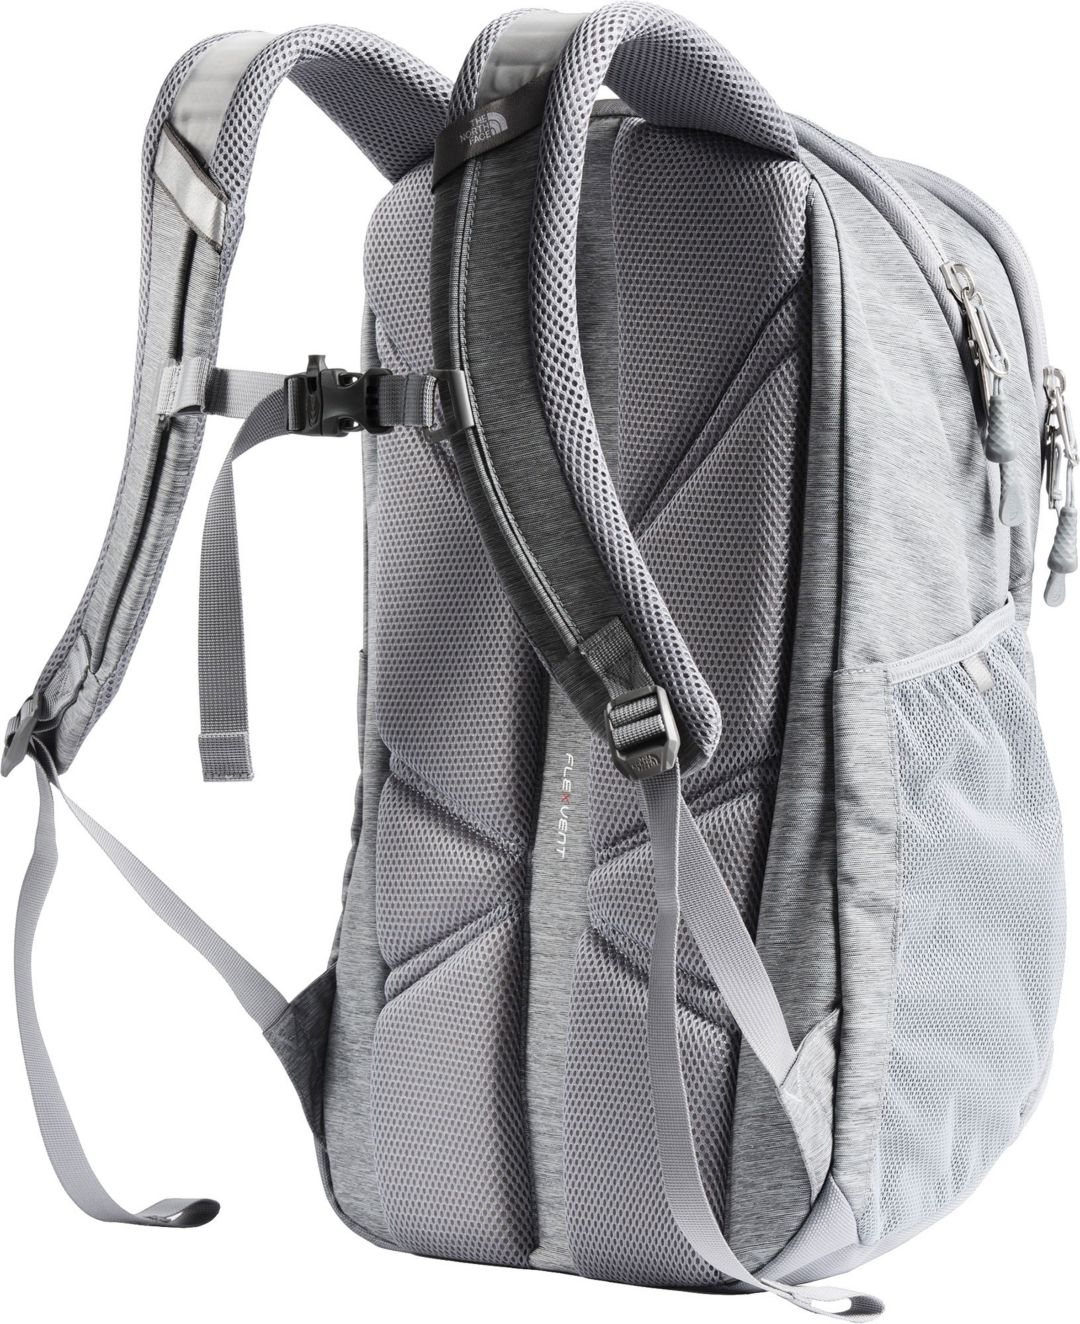 200f0cd5d The North Face Men's Jester Backpack